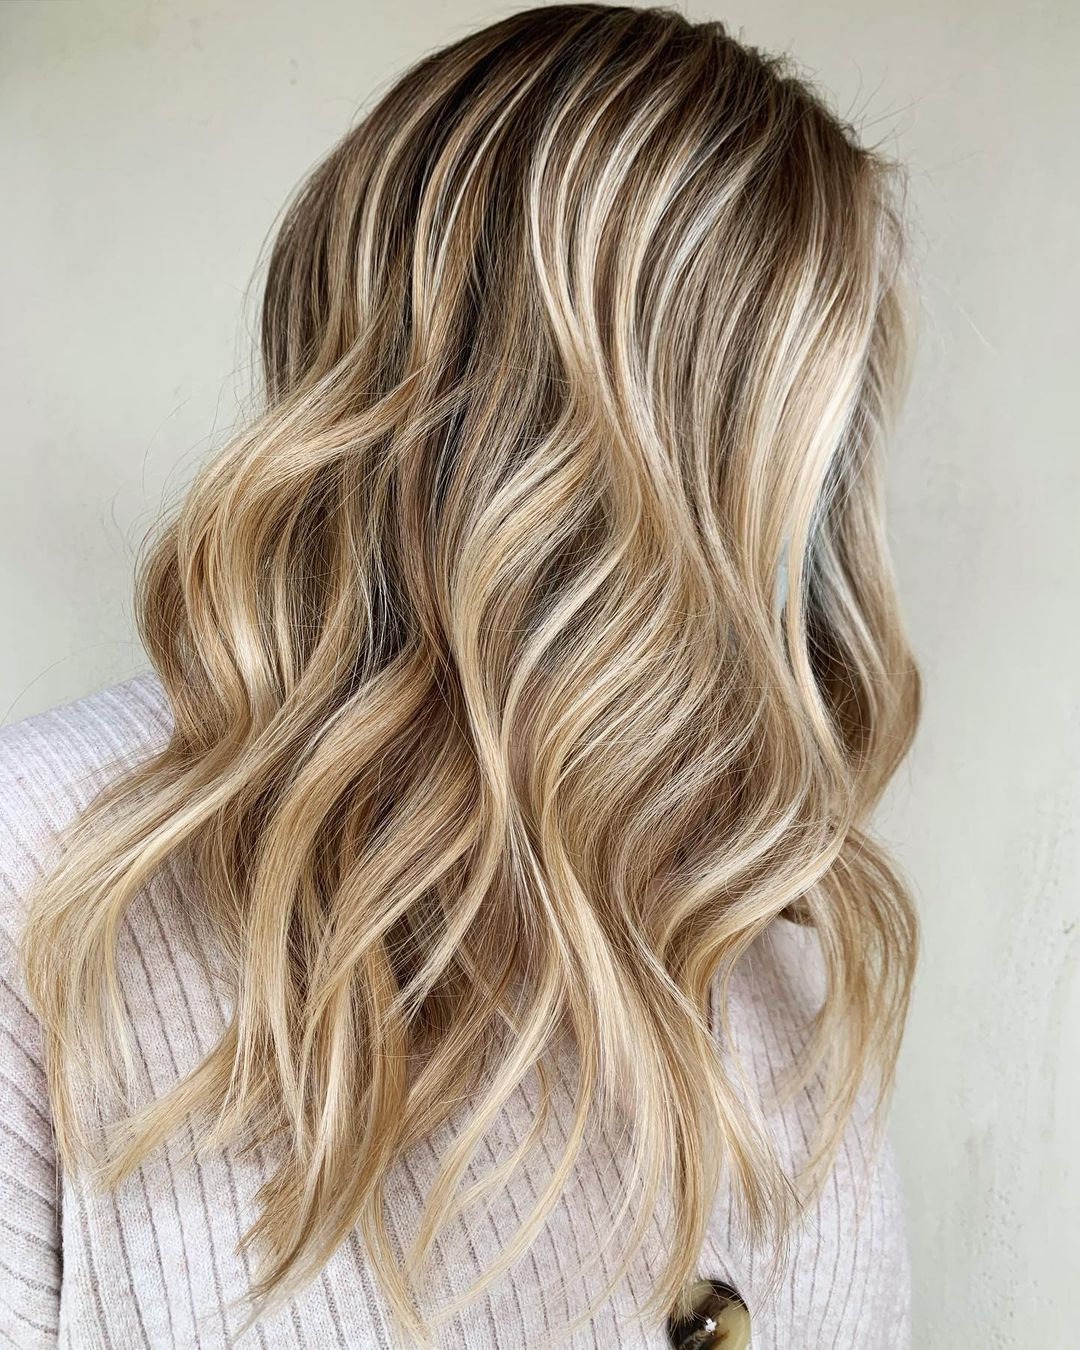 Blonde Hair with Highlights and Waves